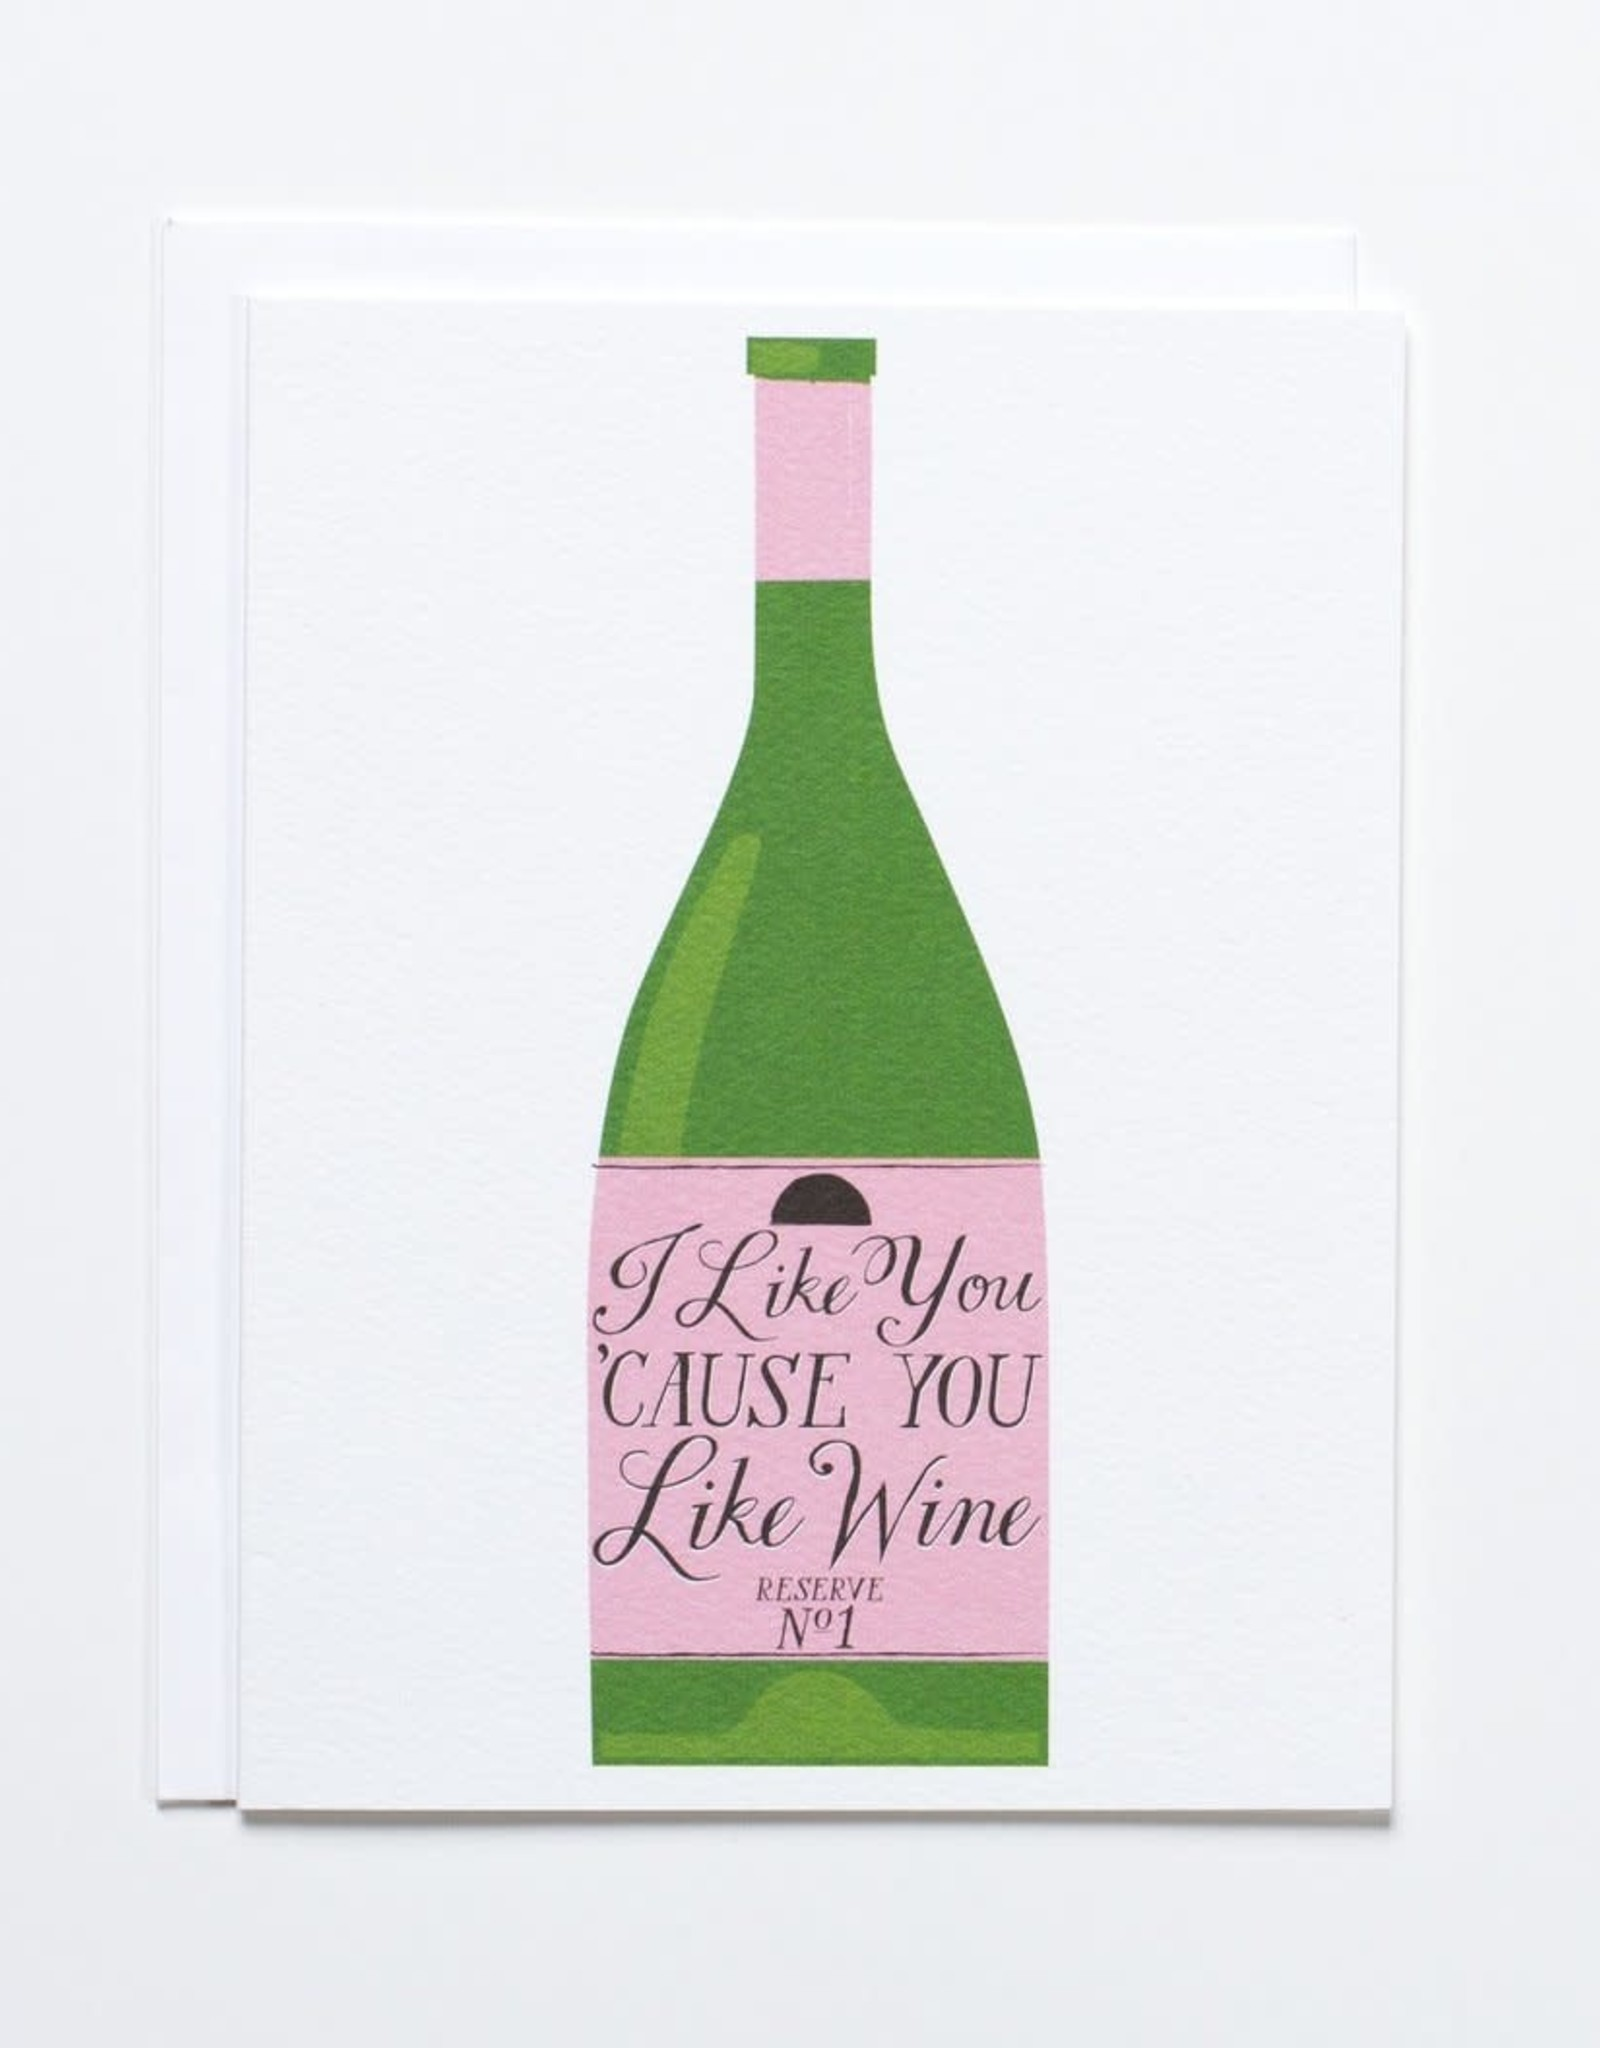 Banquet Atelier & Workshop I Like You 'Cause You Like Wine - Note Card